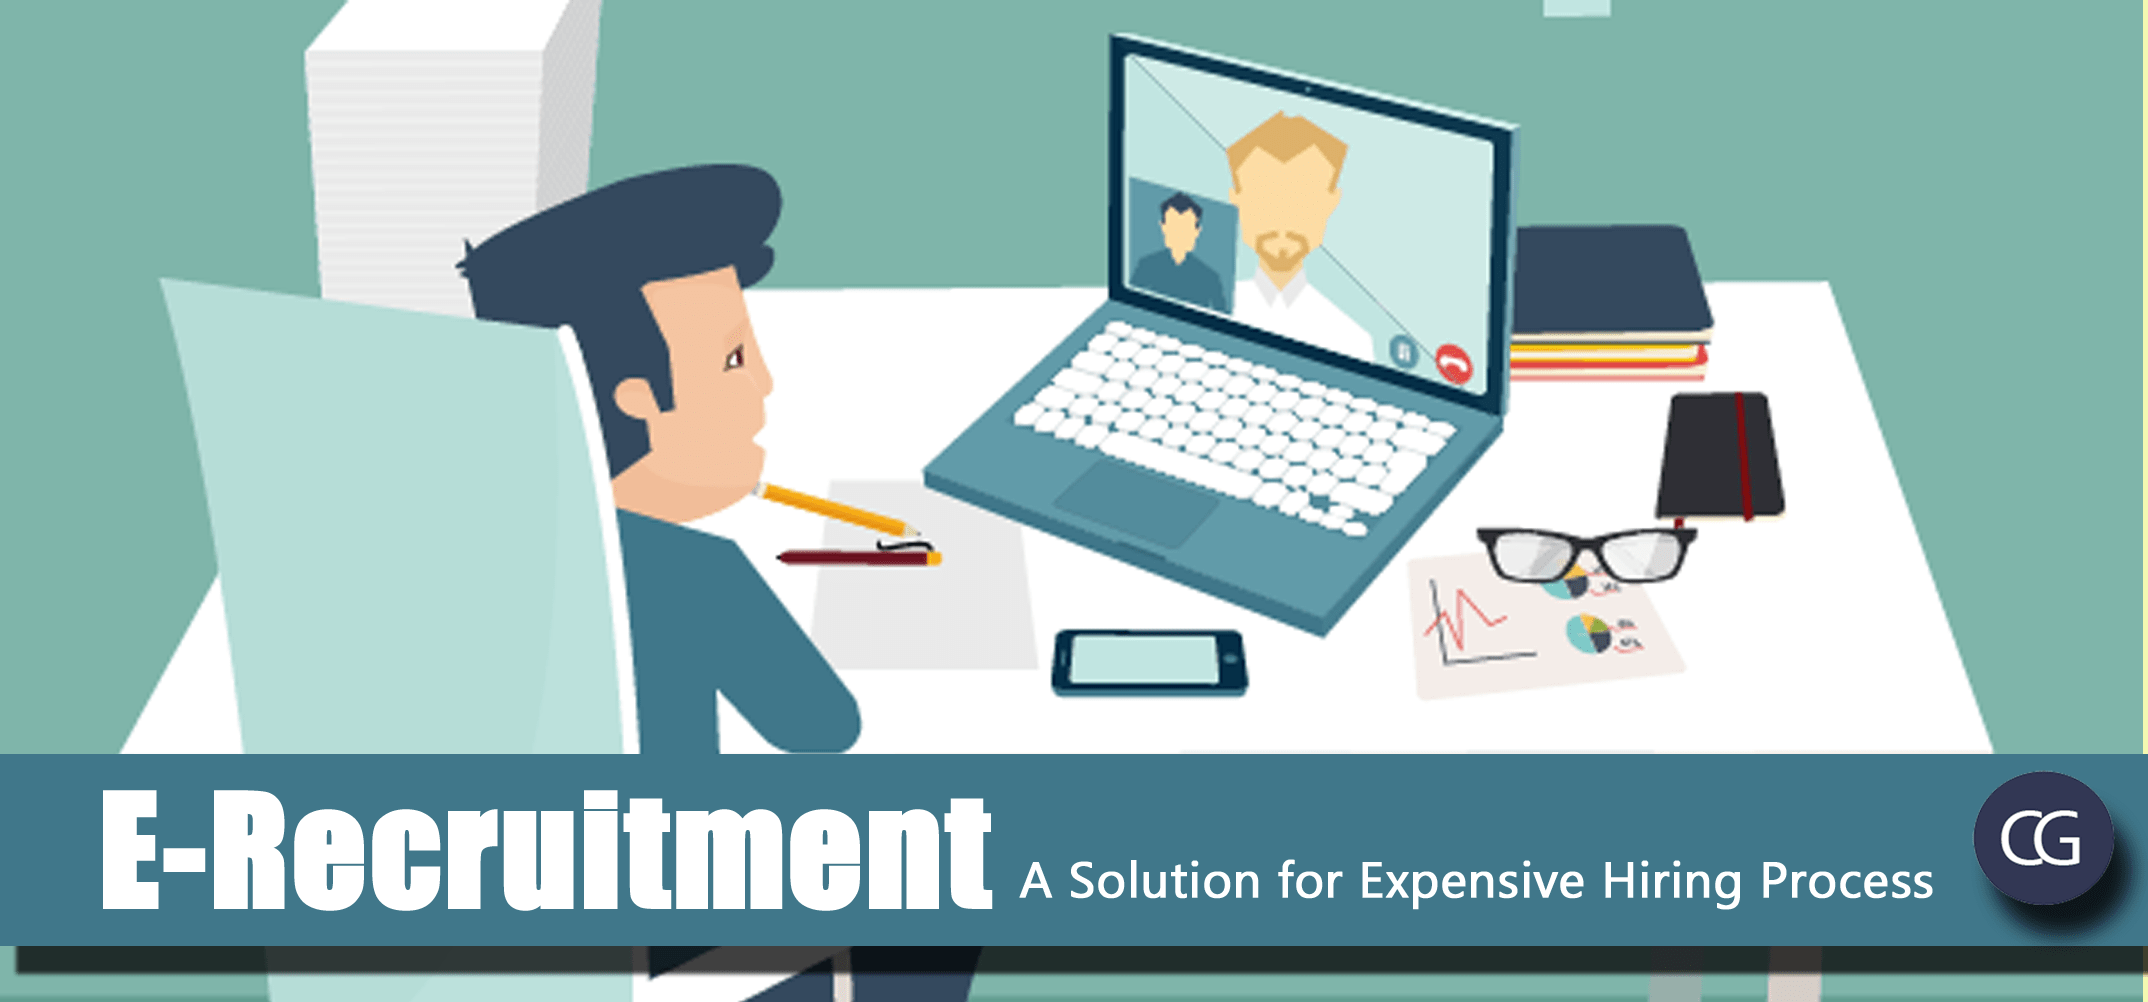 Online Recruitment E-recruitment : A Solution To Help Avoid Expensive Hiring